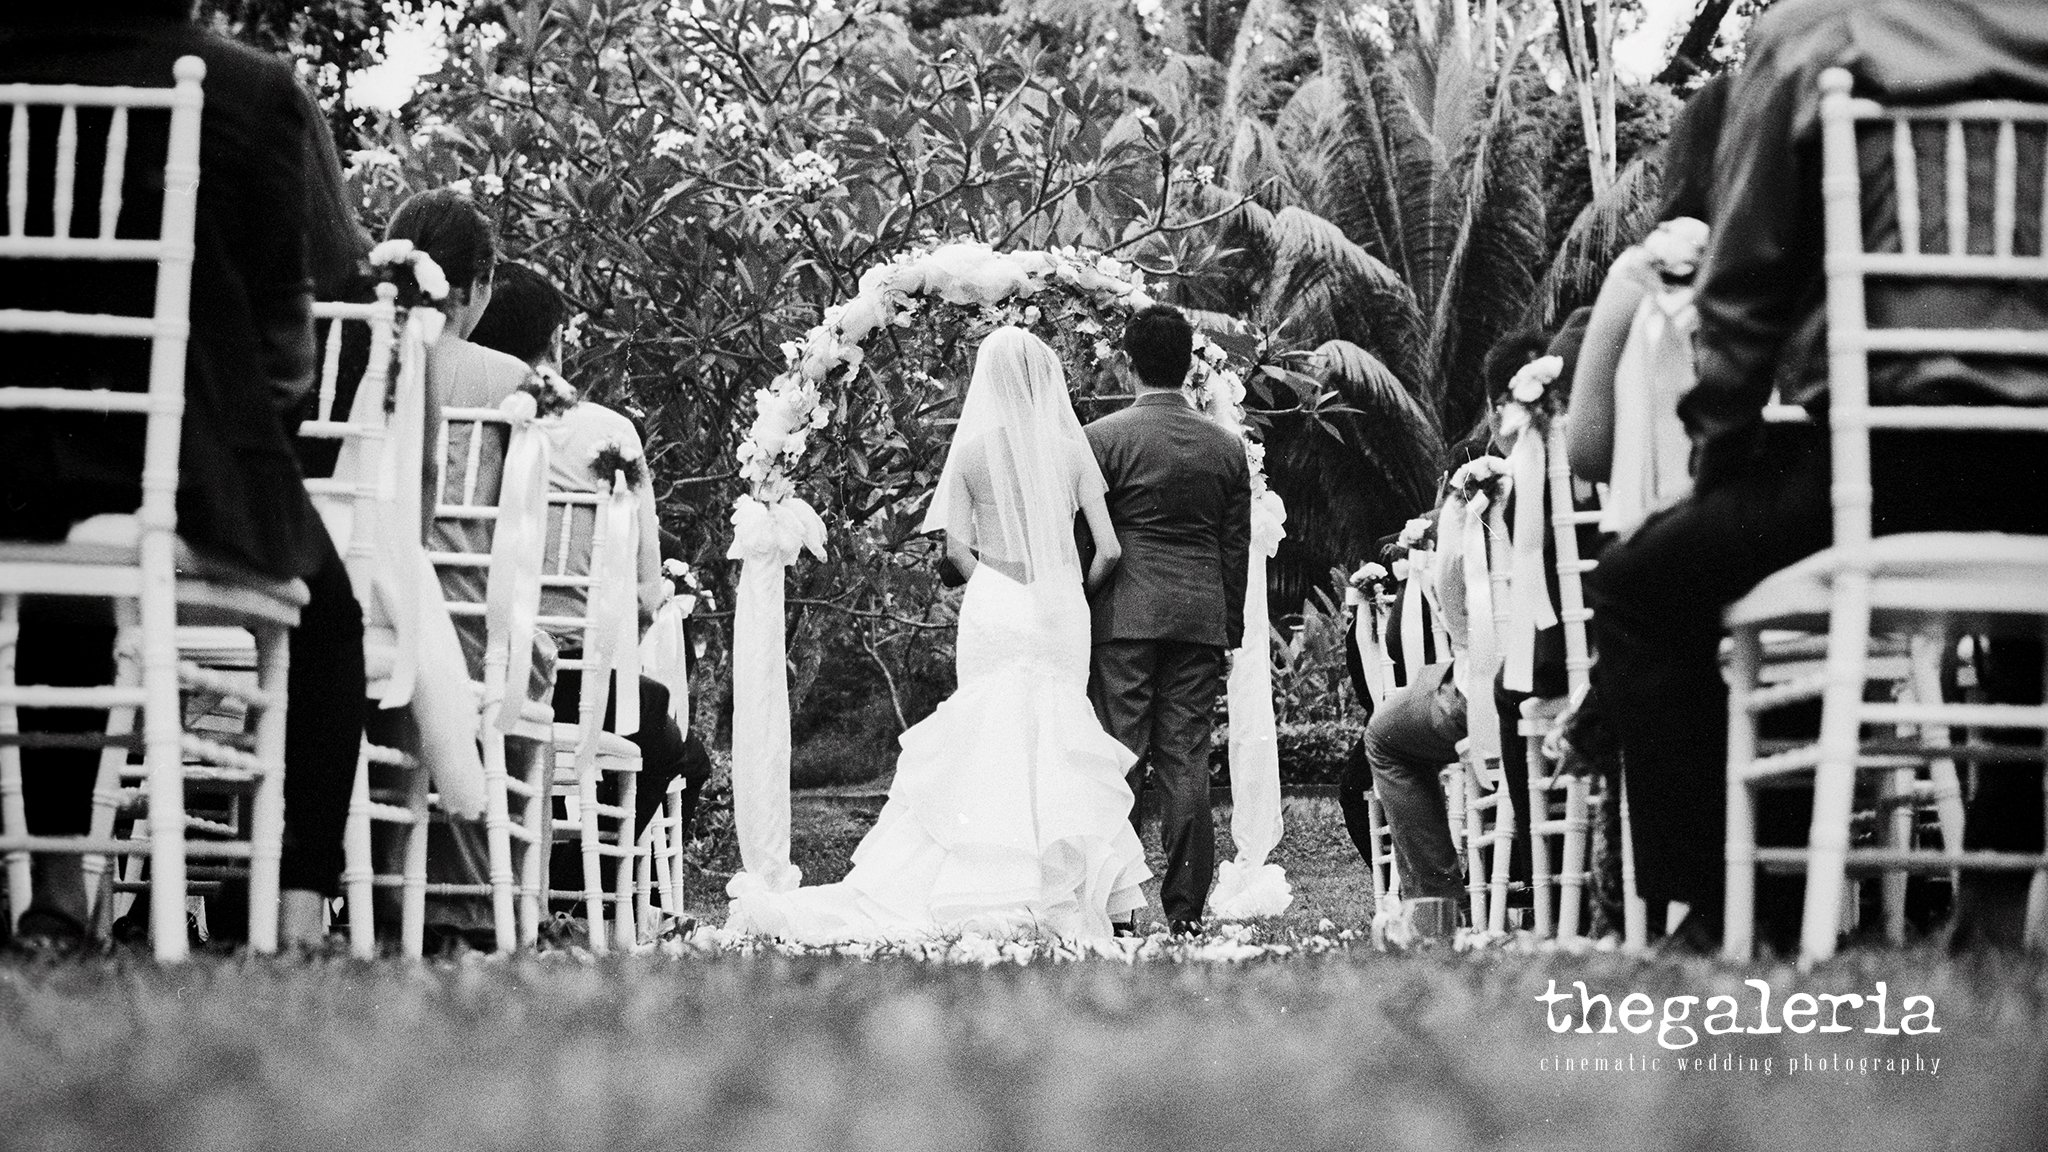 Wedding Photography: Brian Ho / thegaleria Wedding Gown: The Wedding Present Location: Suburbia @ Sentosa